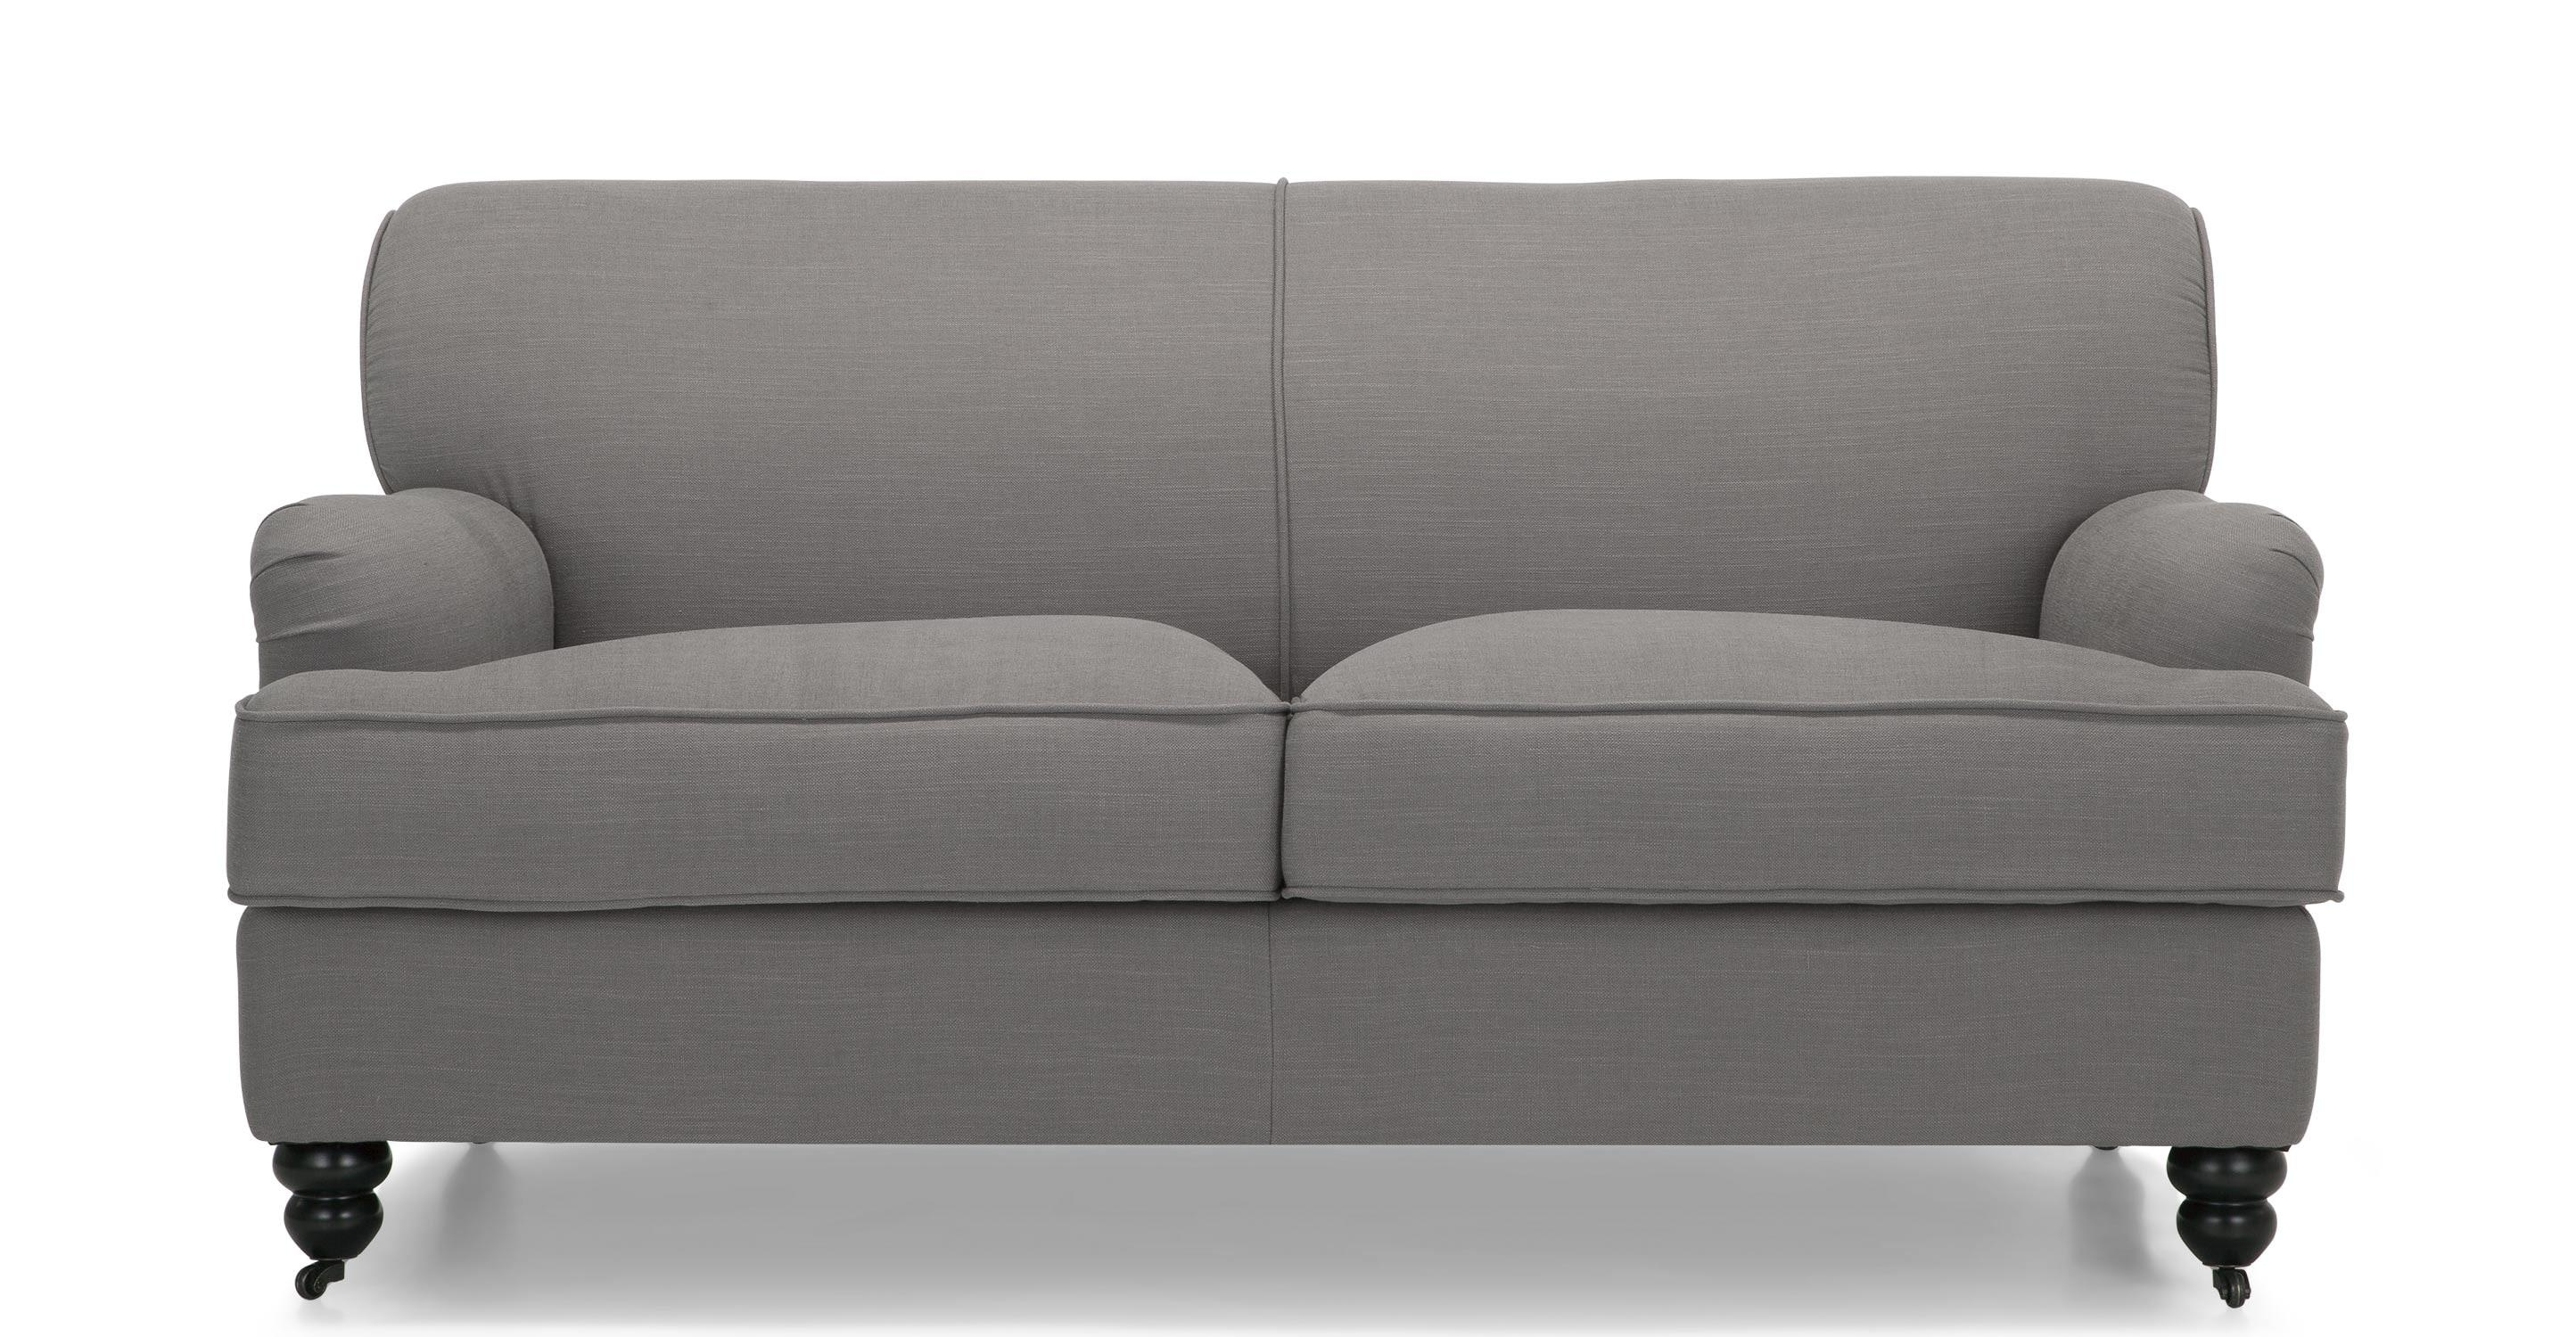 Orson 2 Seater Sofa, Graphite Grey | Made Pertaining To Two Seater Sofas (Image 14 of 20)